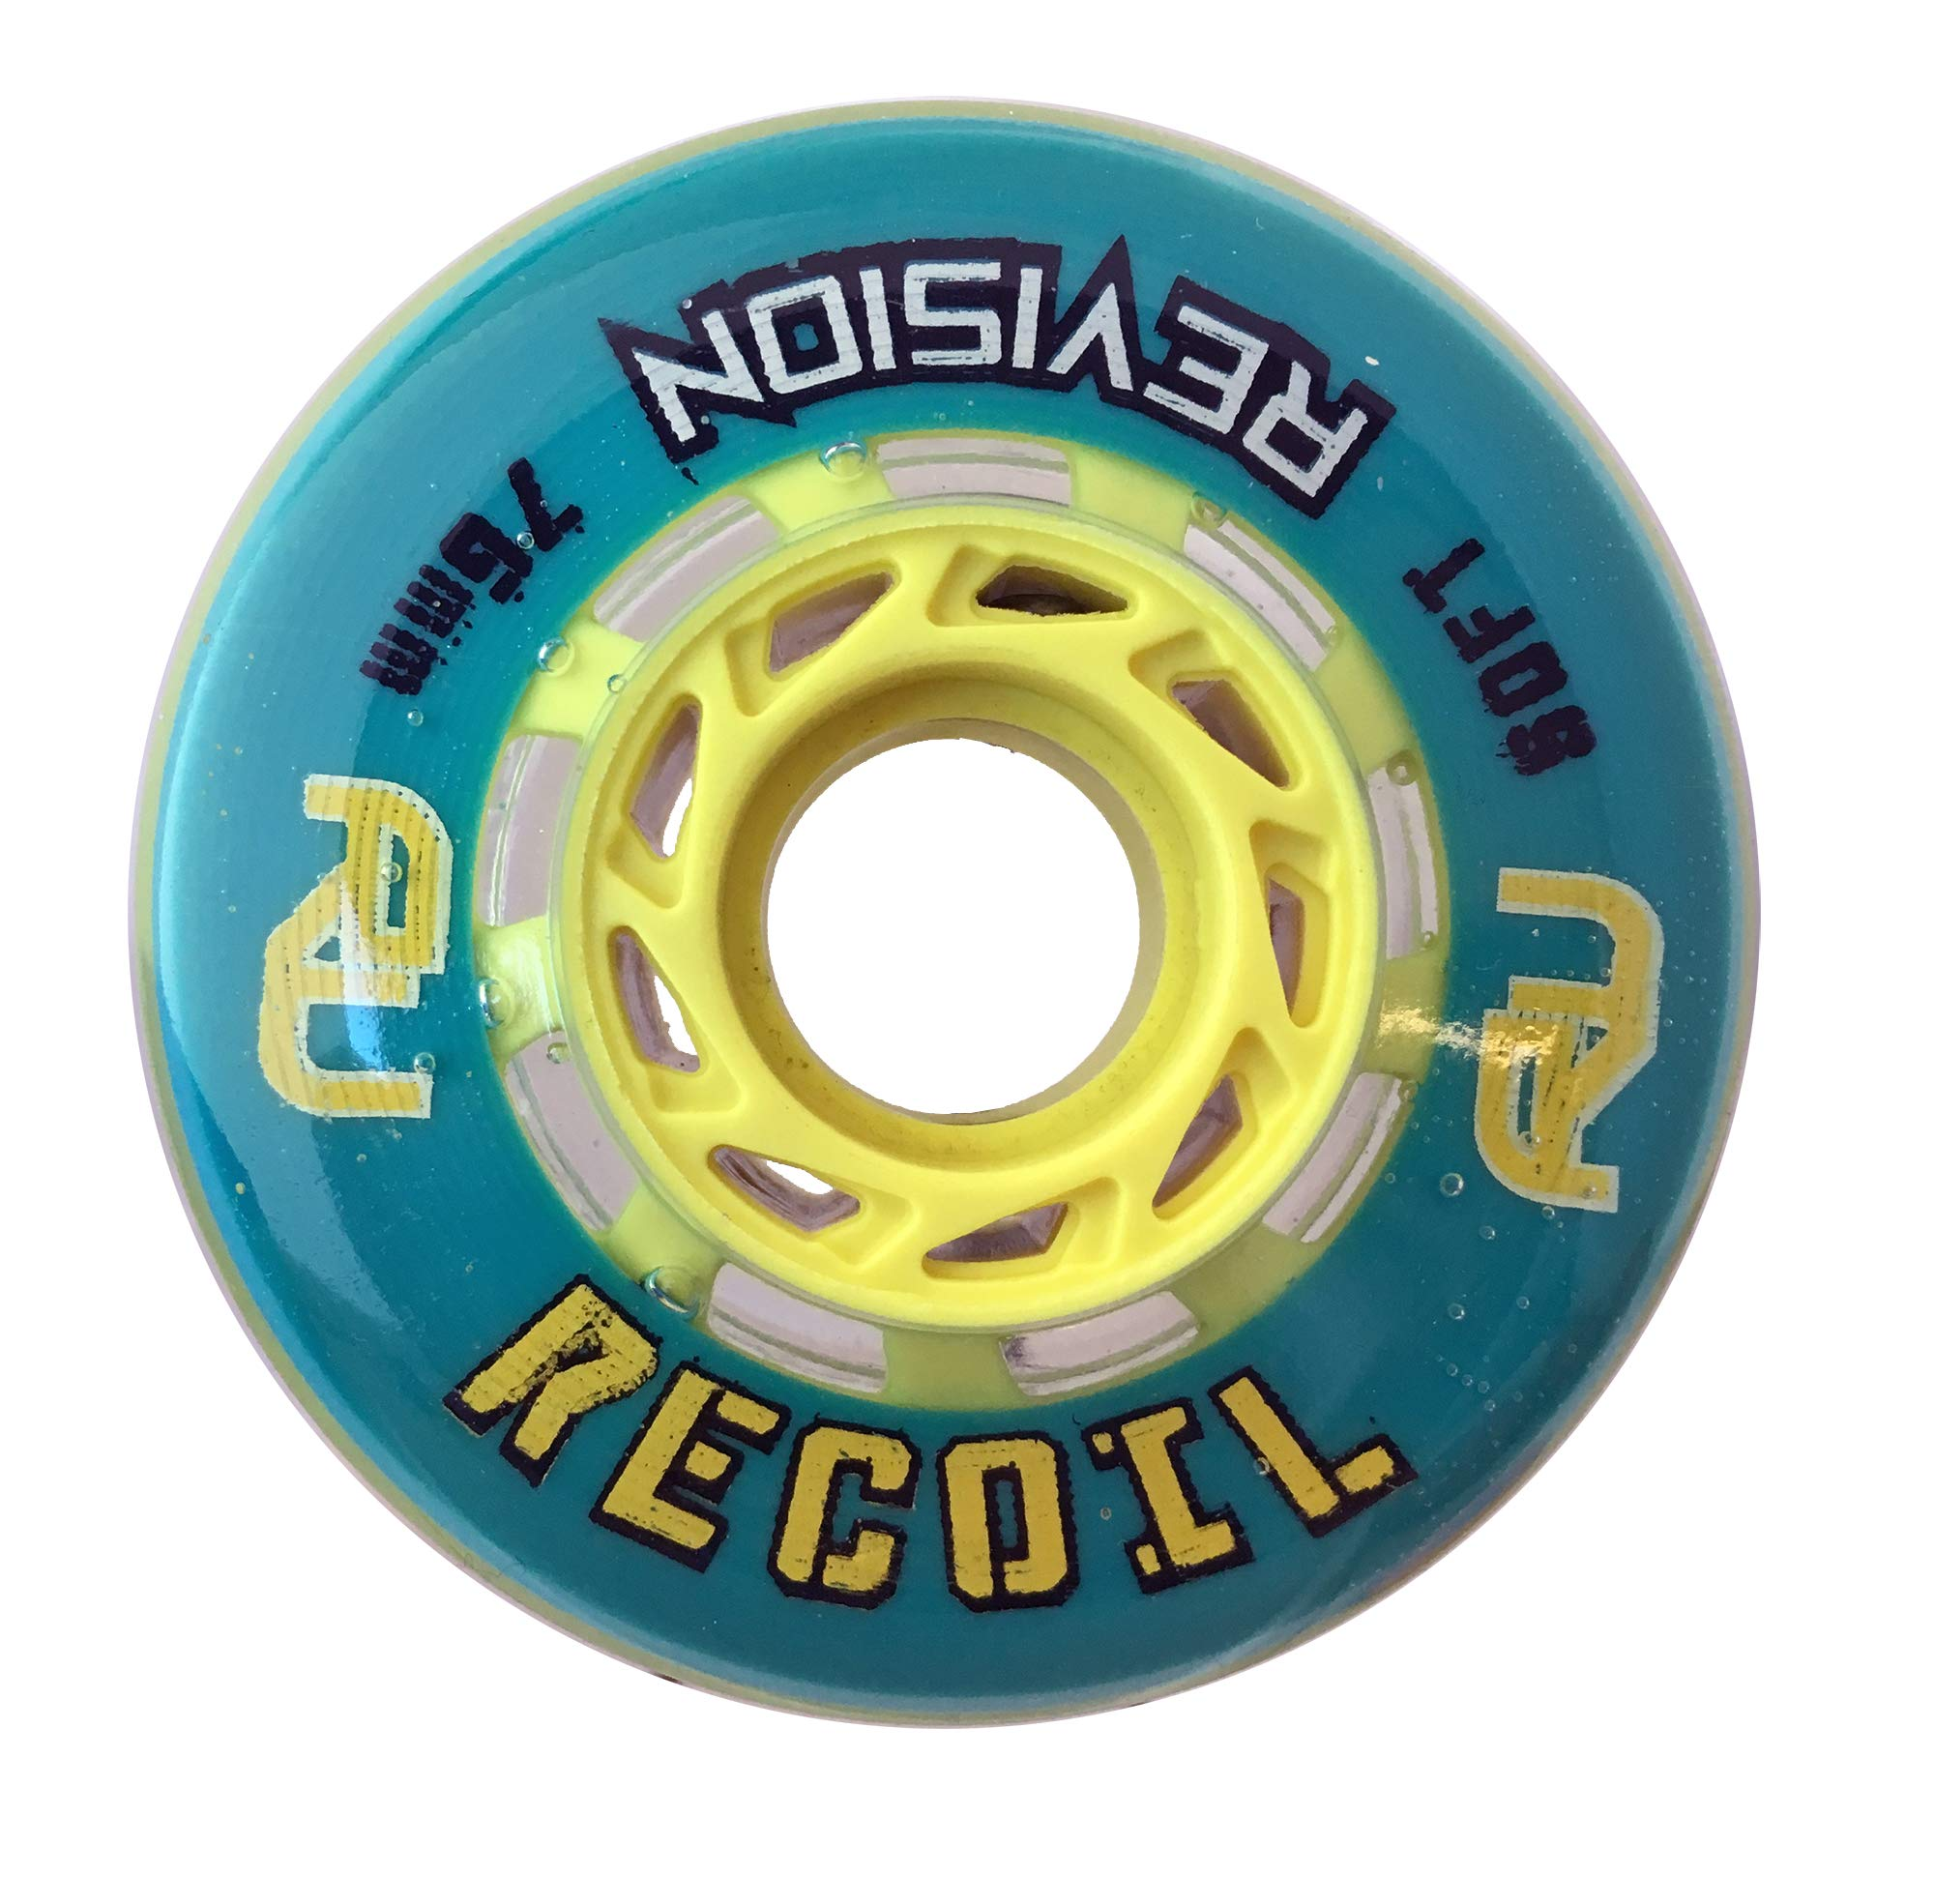 Revision Recoil Indoor Inline Roller Hockey Wheel - 74A - 76mm Soft - Teal & Yellow by Revision Hockey